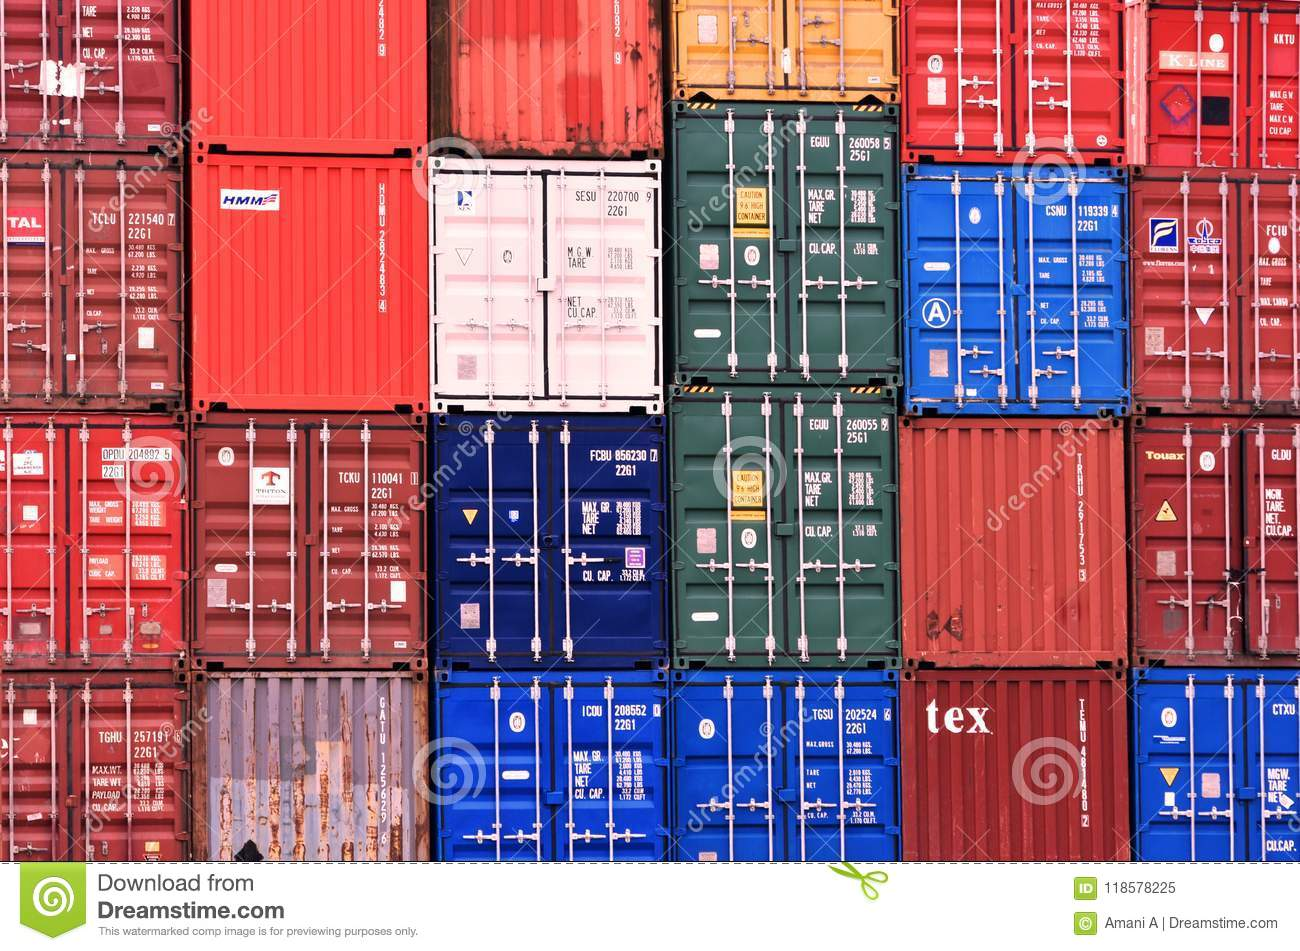 Freight Shipping Containers at Southampton Docks in the UK. 2018.